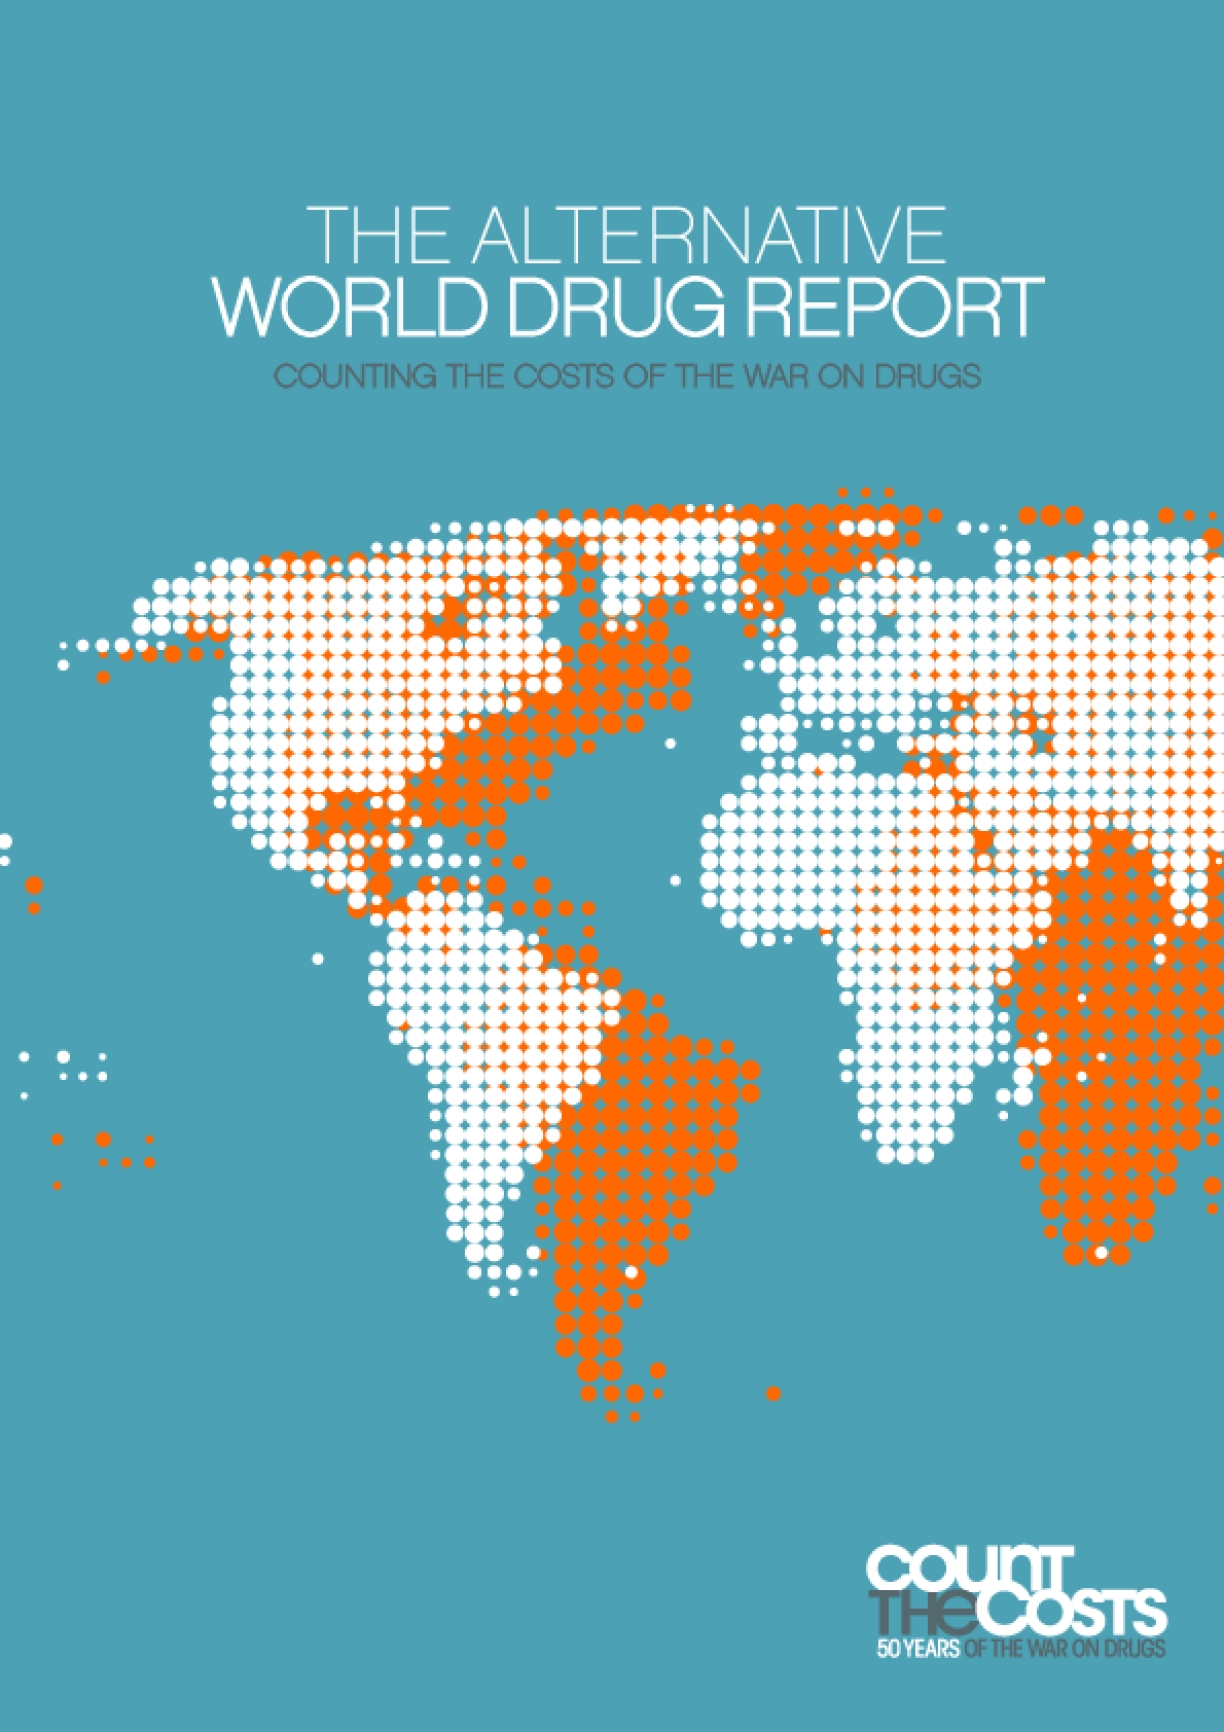 Alternative World Drug Report: Counting the Costs of the War on Drugs